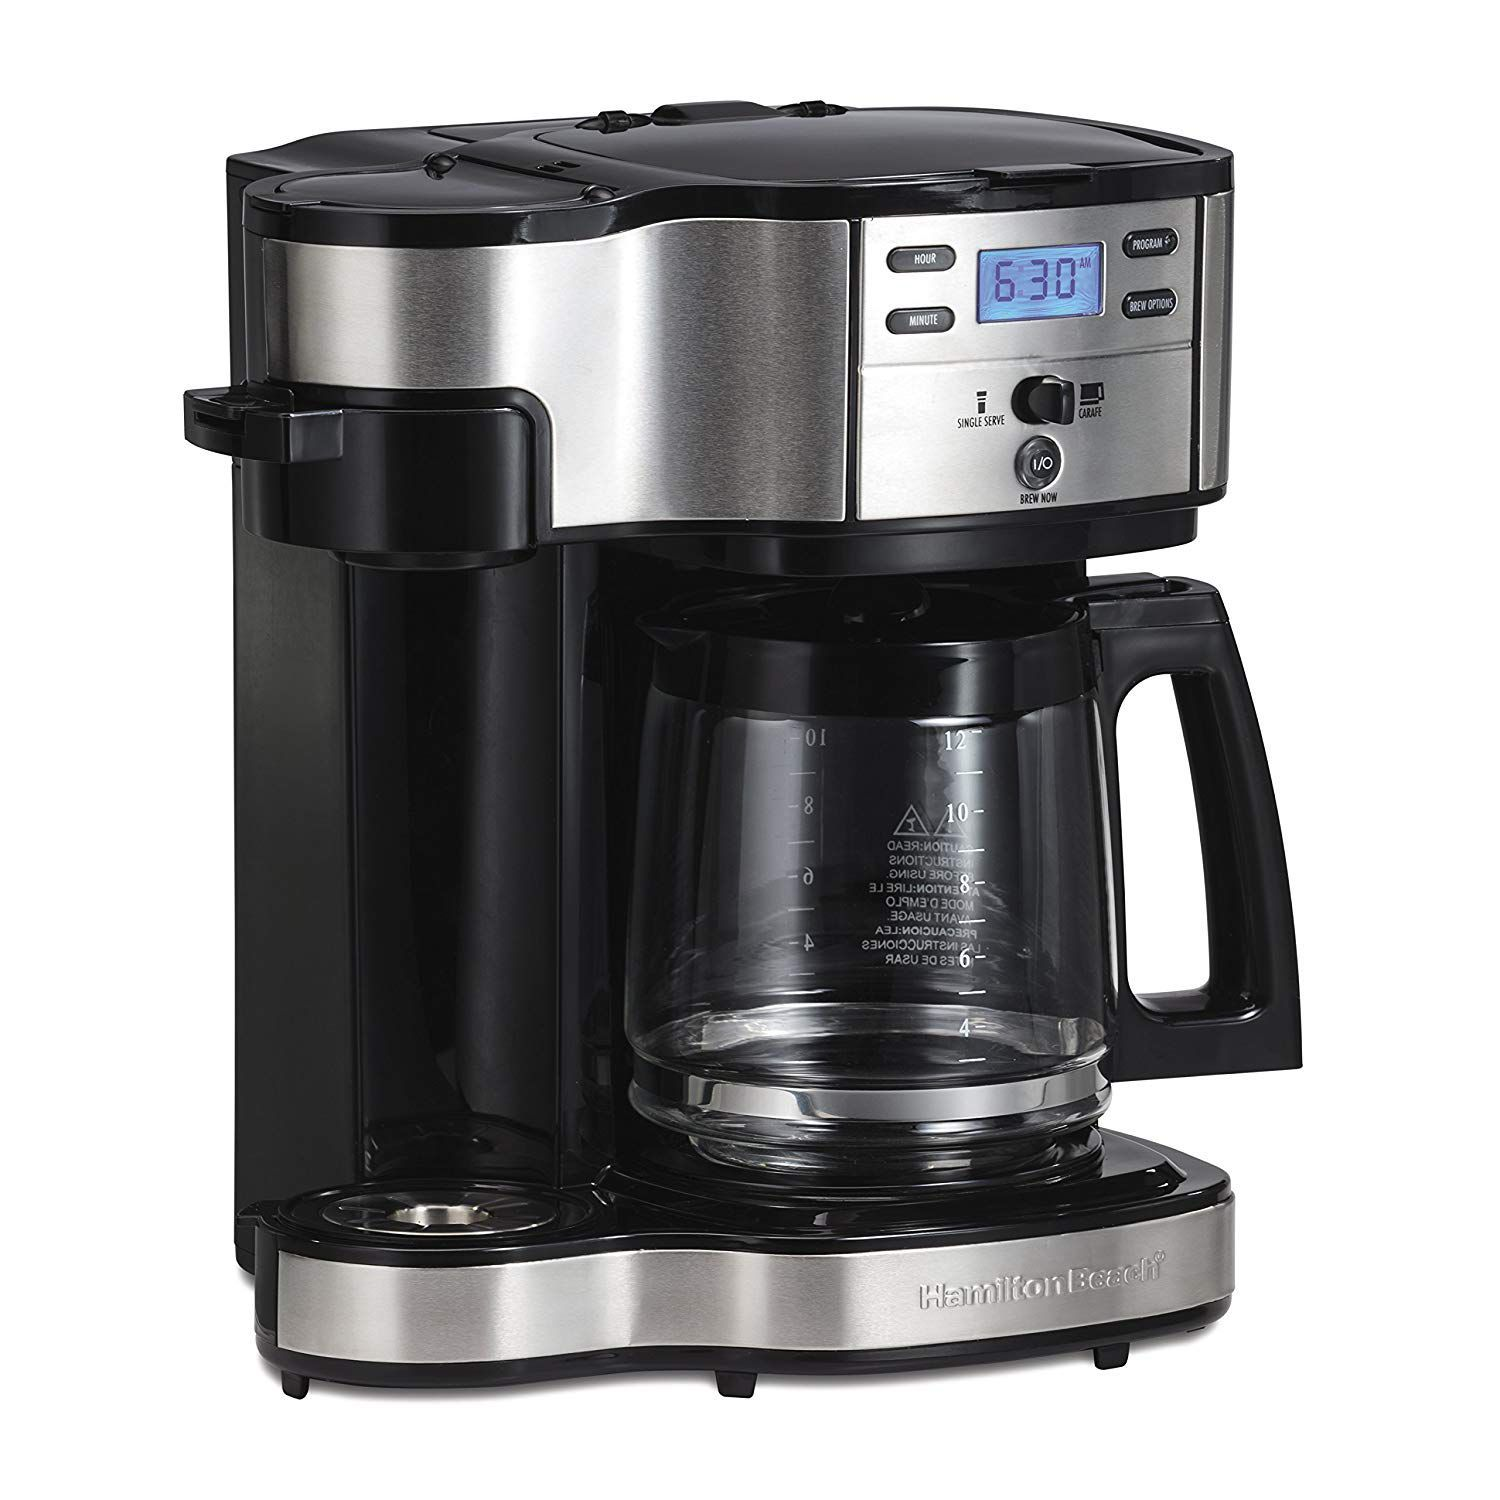 11 Best Coffee Makers Of 2019 Reviews Of Top Coffee Machines Makers